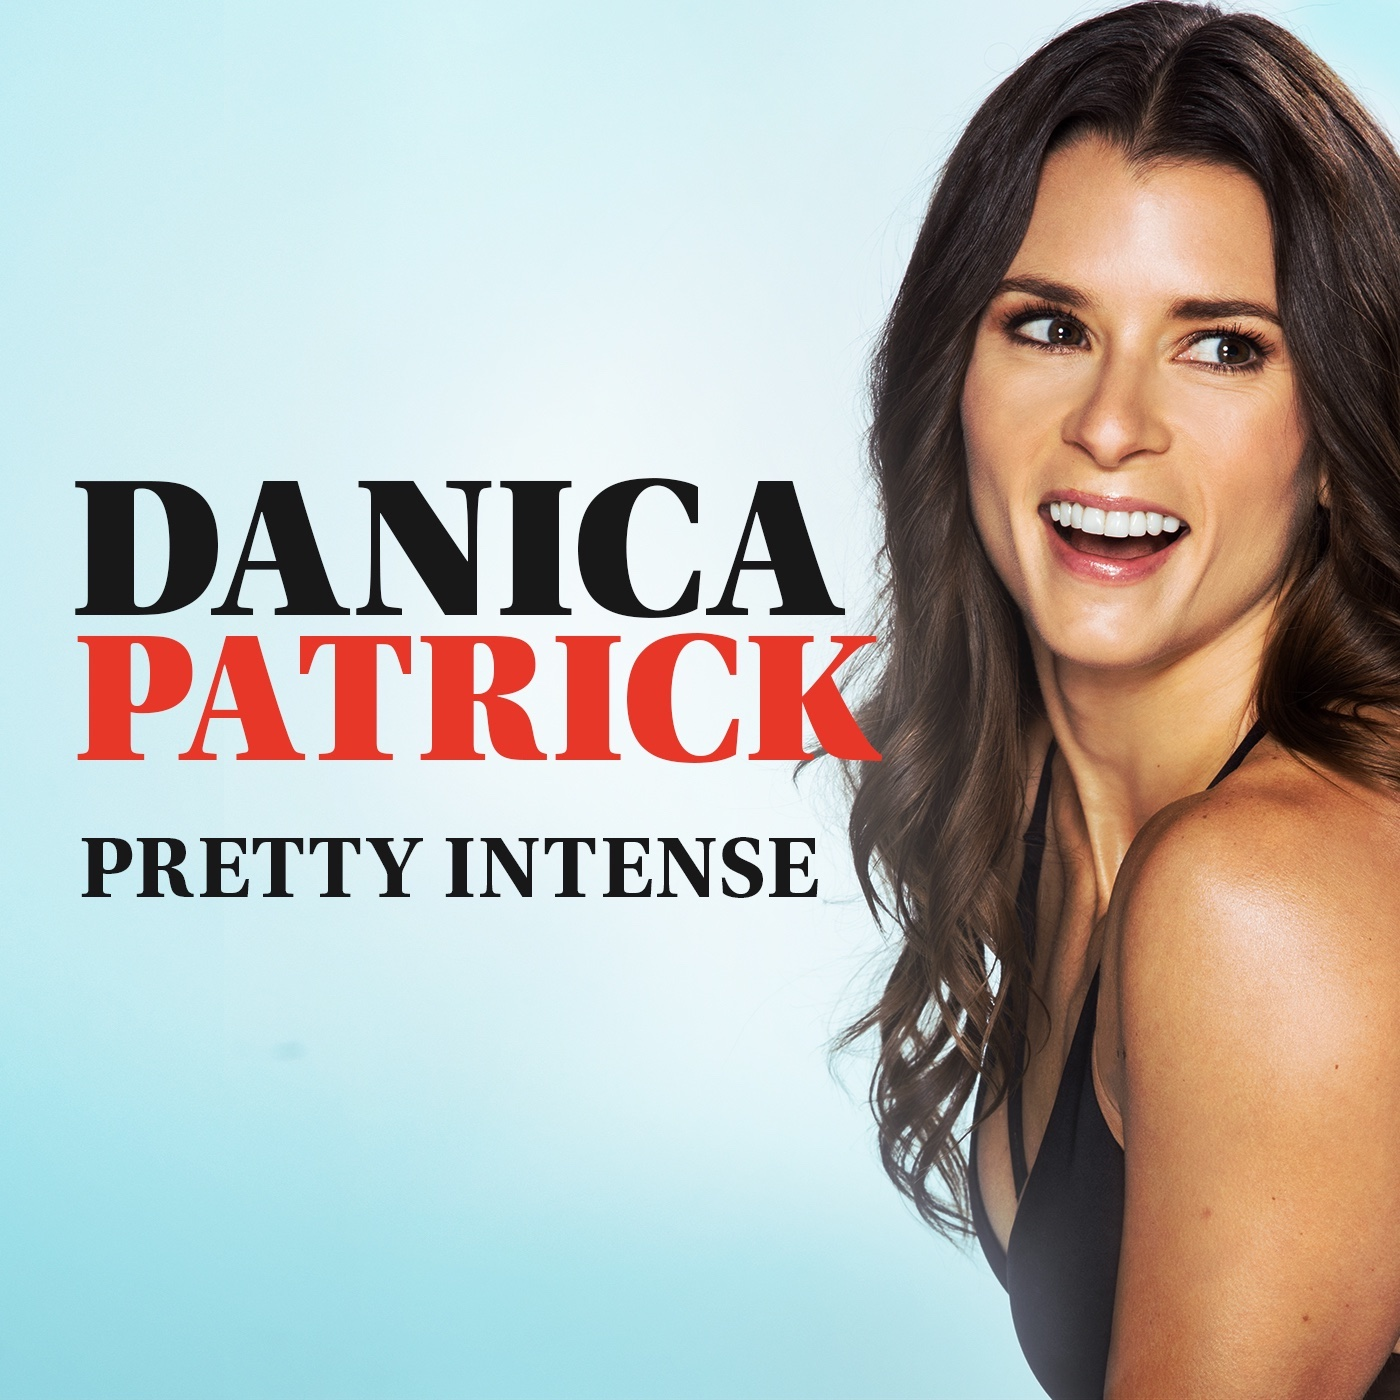 Artwork for Danica Patrick Pretty Intense Video Trailer